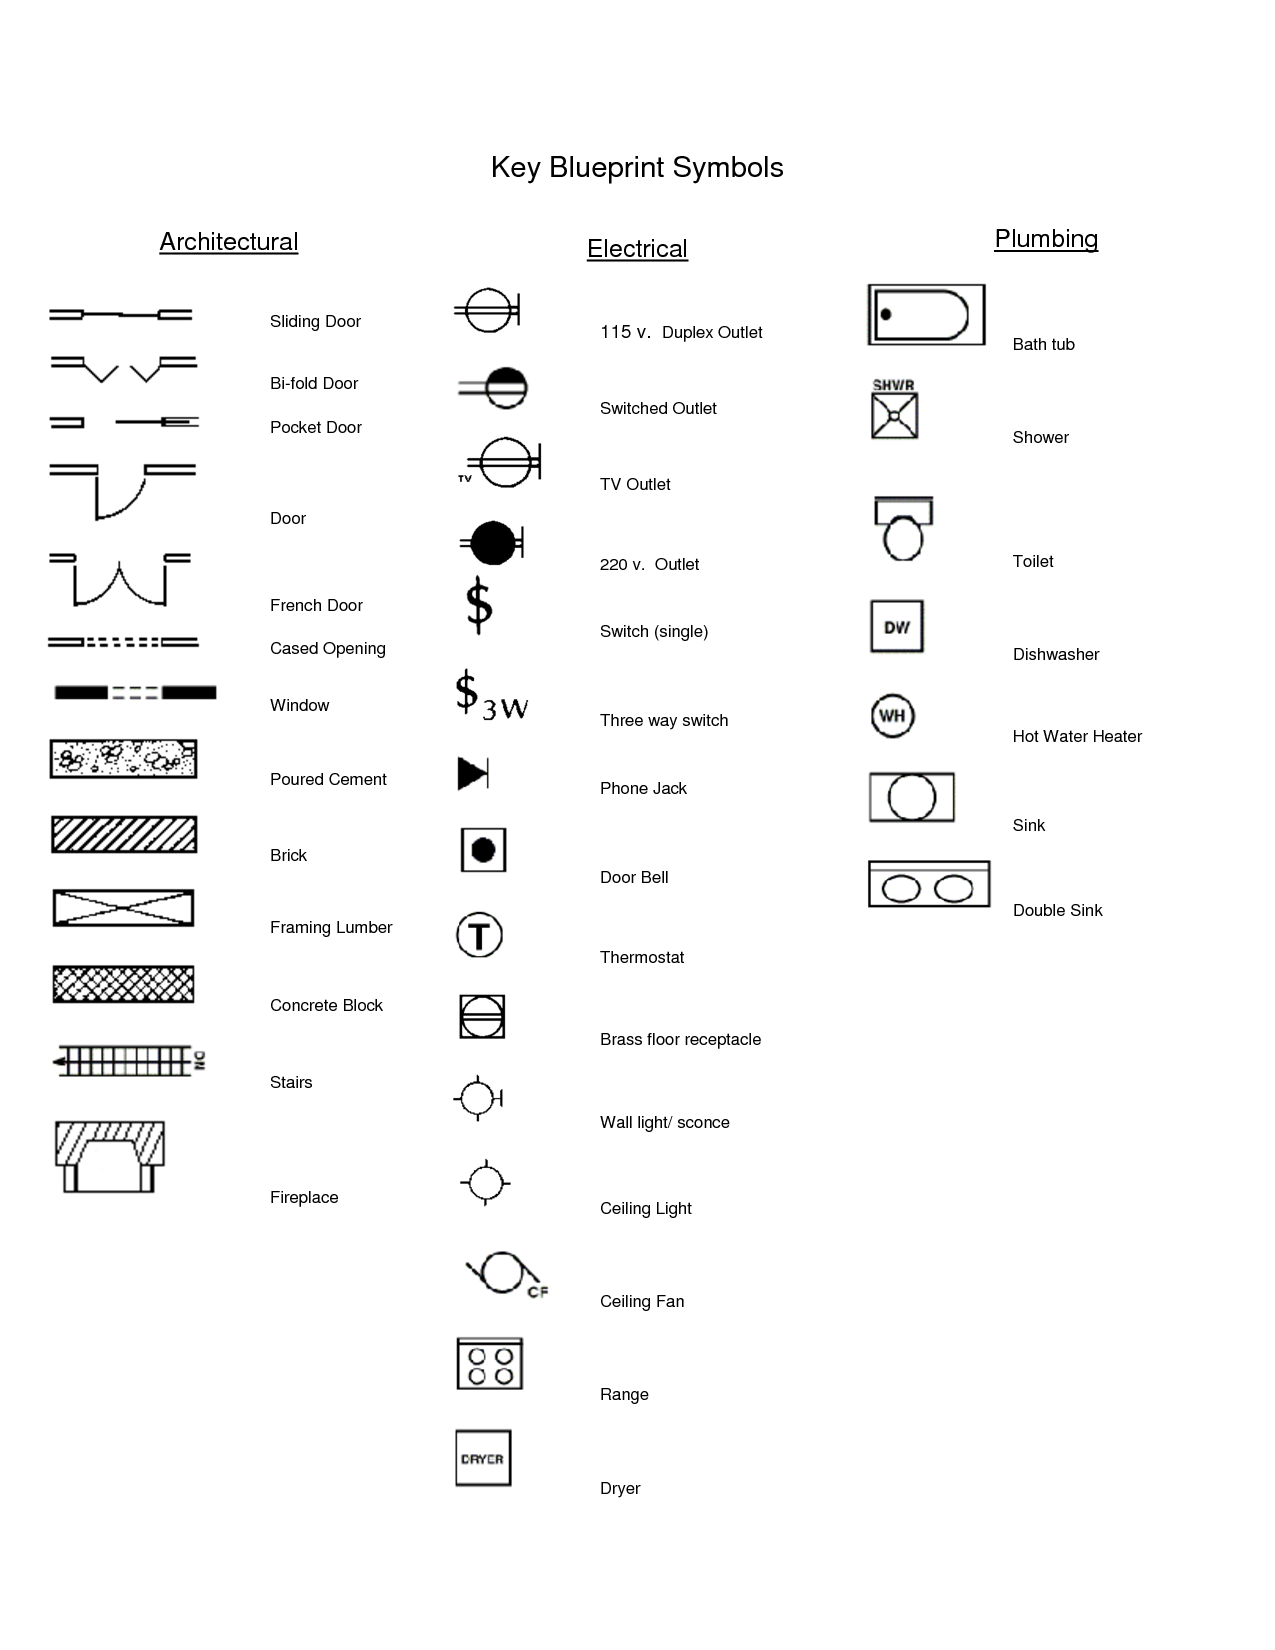 Electrical Outlet Symbols Blueprints #Brick Pinned by www.modlar ...